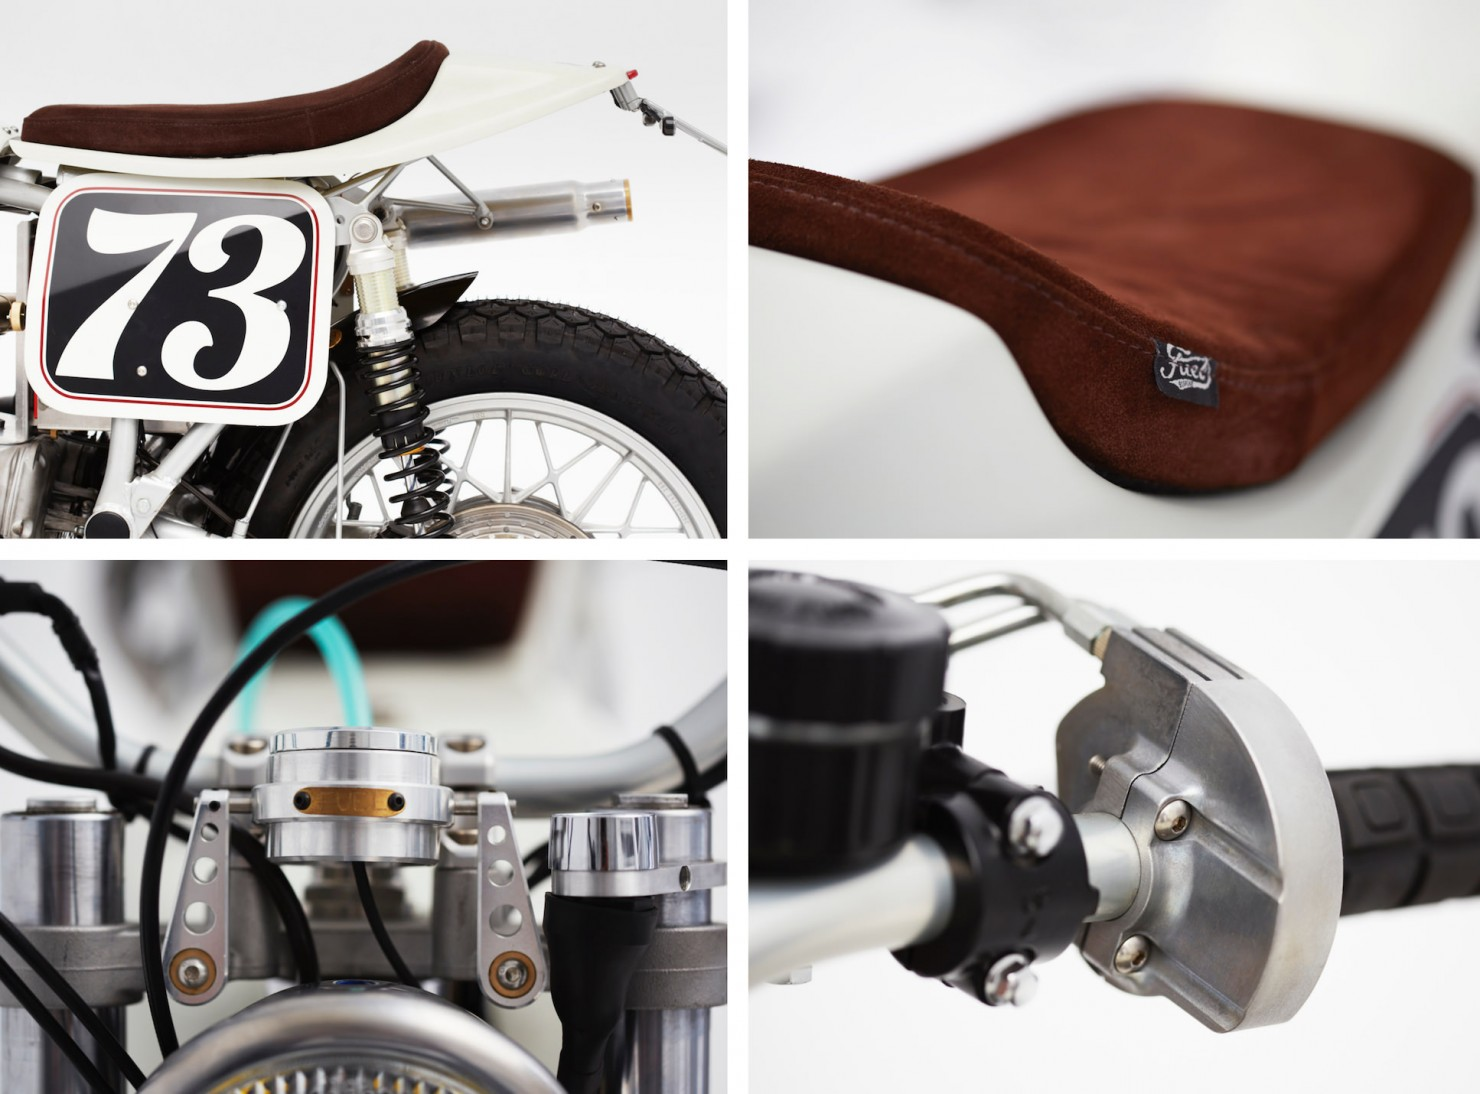 BMW R100 RS Flat Tracker Details